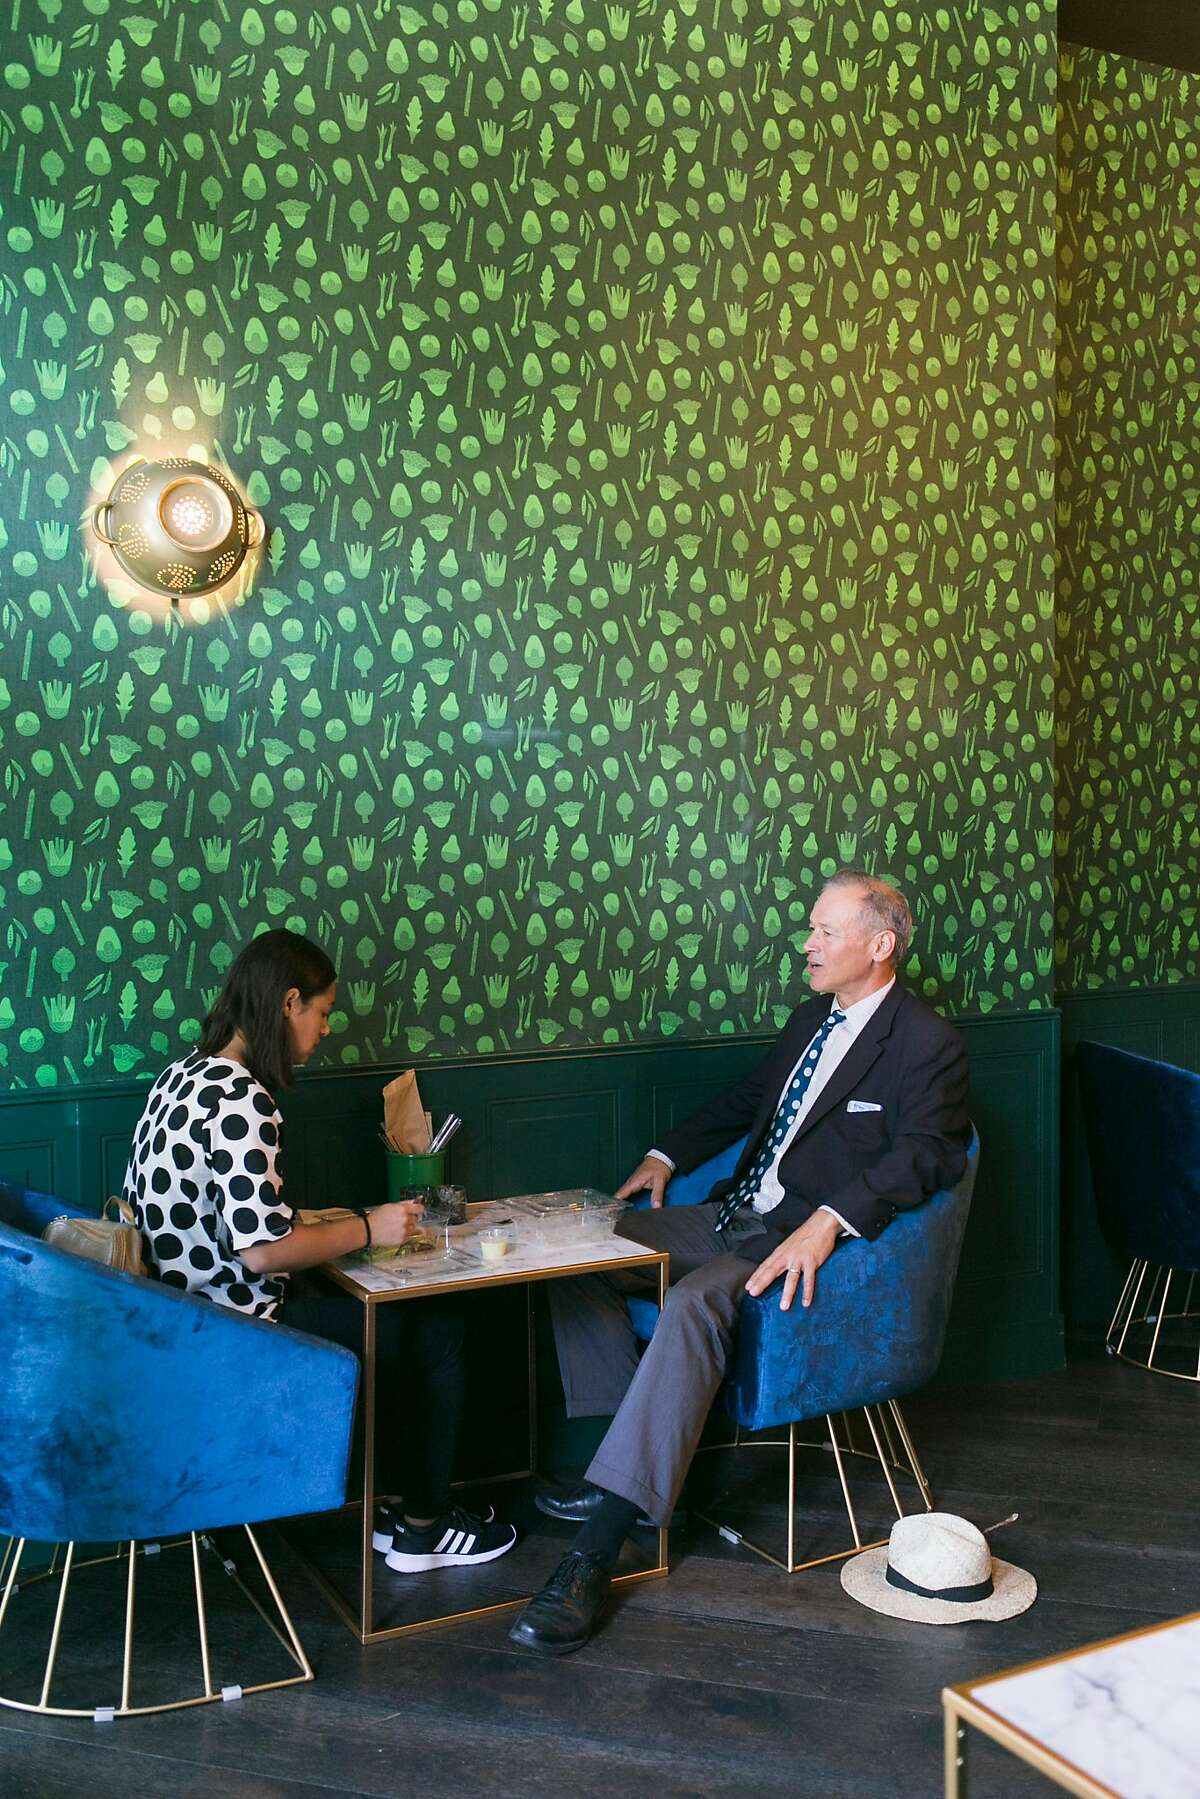 Hannah Moazed (left) and Steve Moazed have lunch inside the Salad Lounge at Mixt on Valencia Street in San Francisco, Calif. on Friday, July 20, 2018.